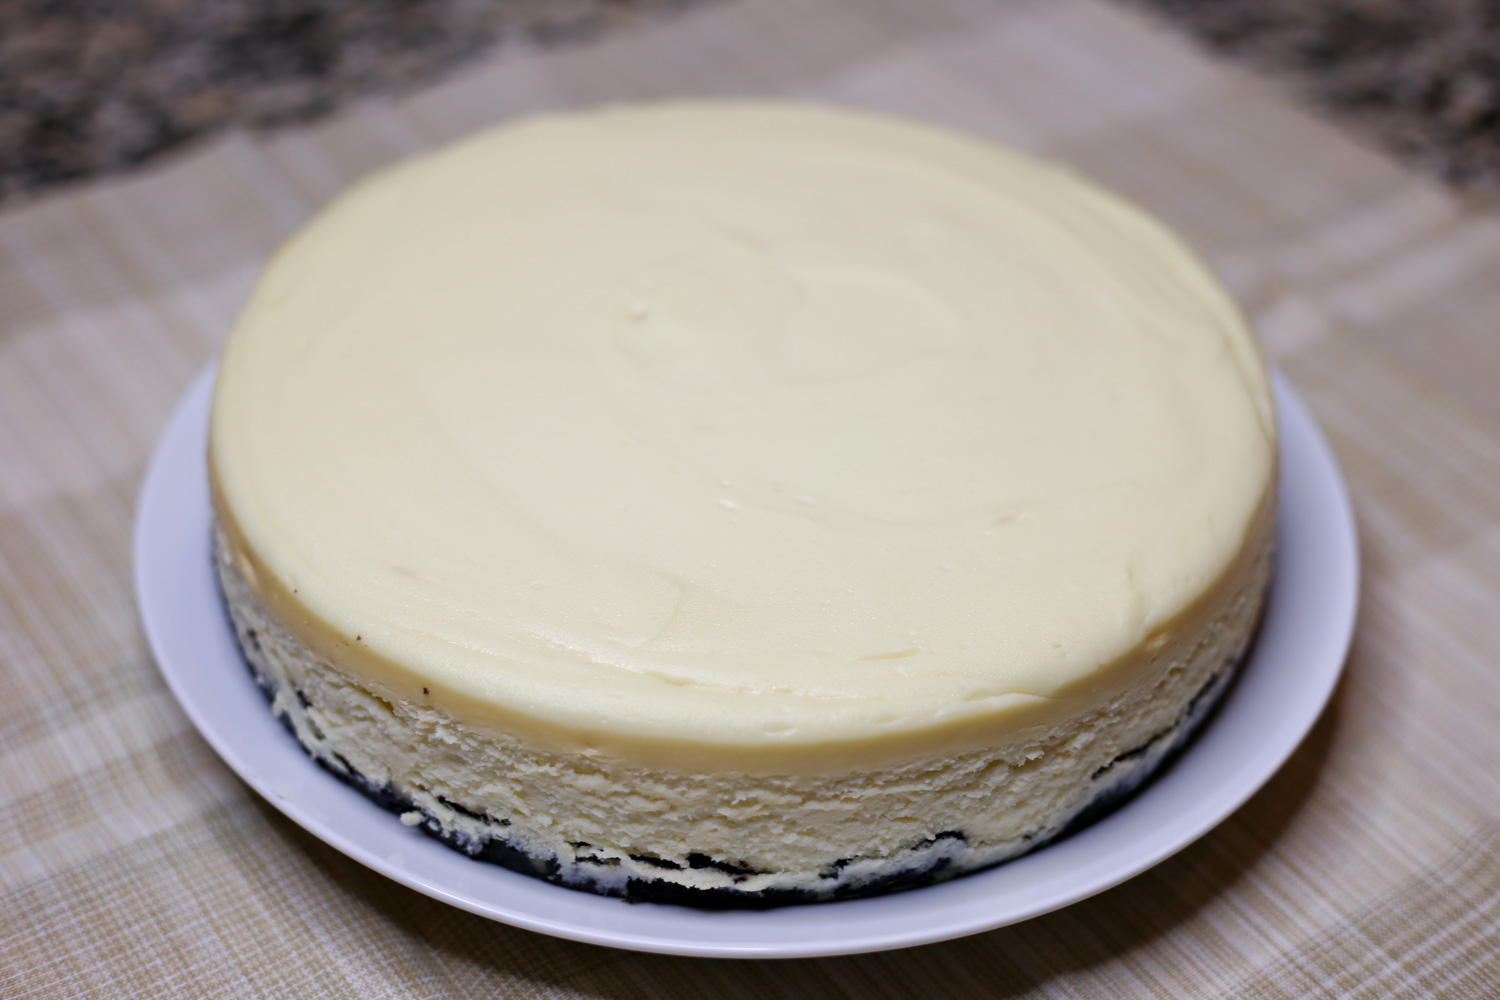 This award winning New York style cheesecake is a little slice of heaven right here on earth!